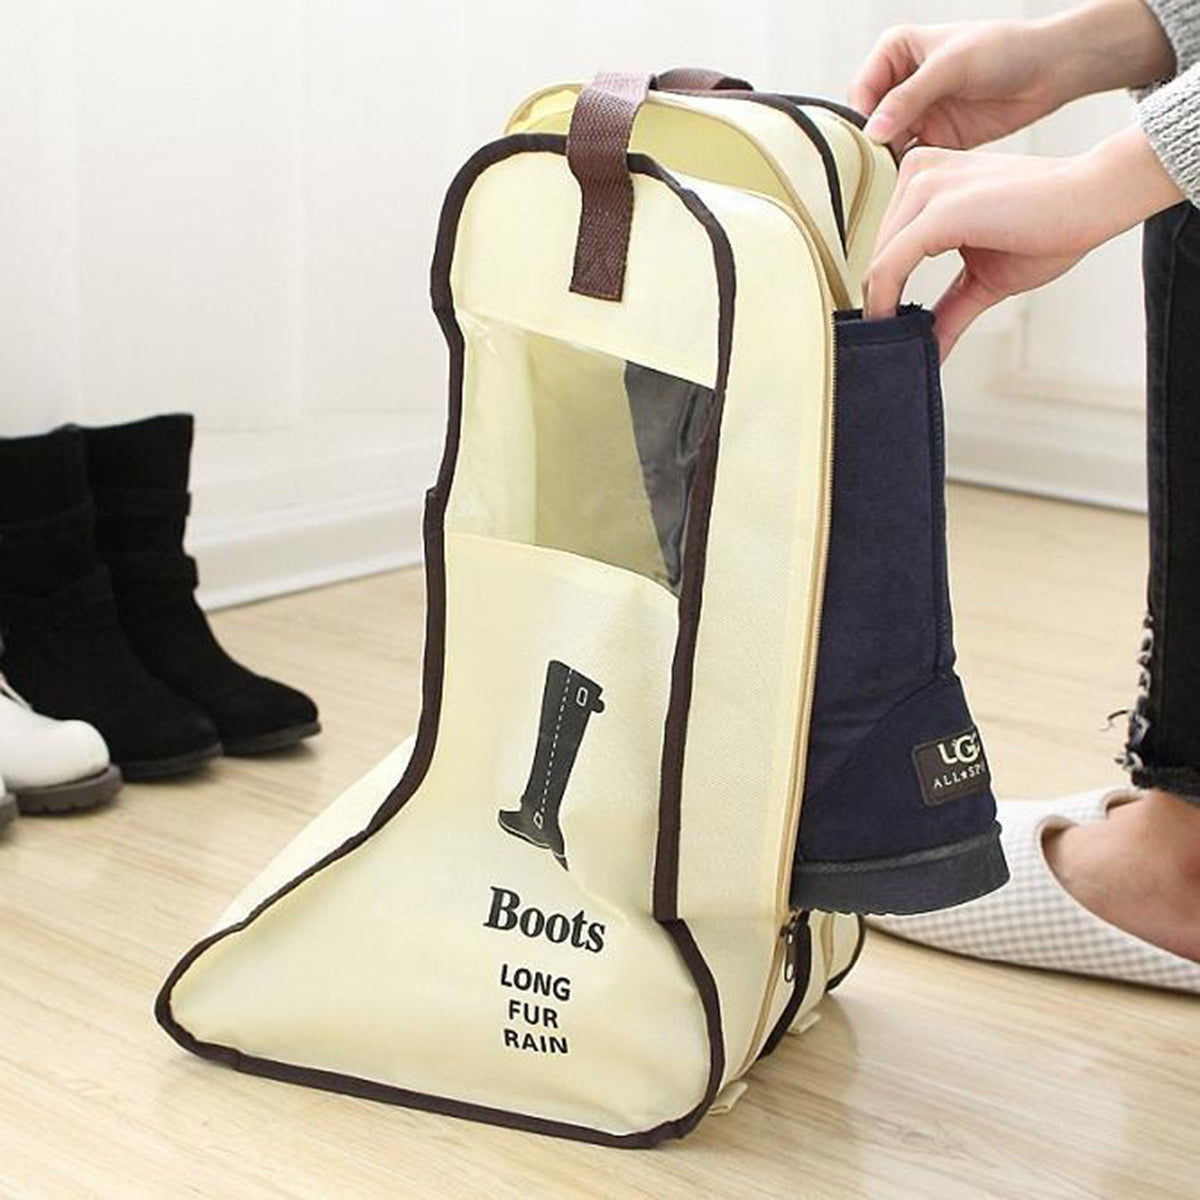 Waterproof Travel Boot Bag Organiser